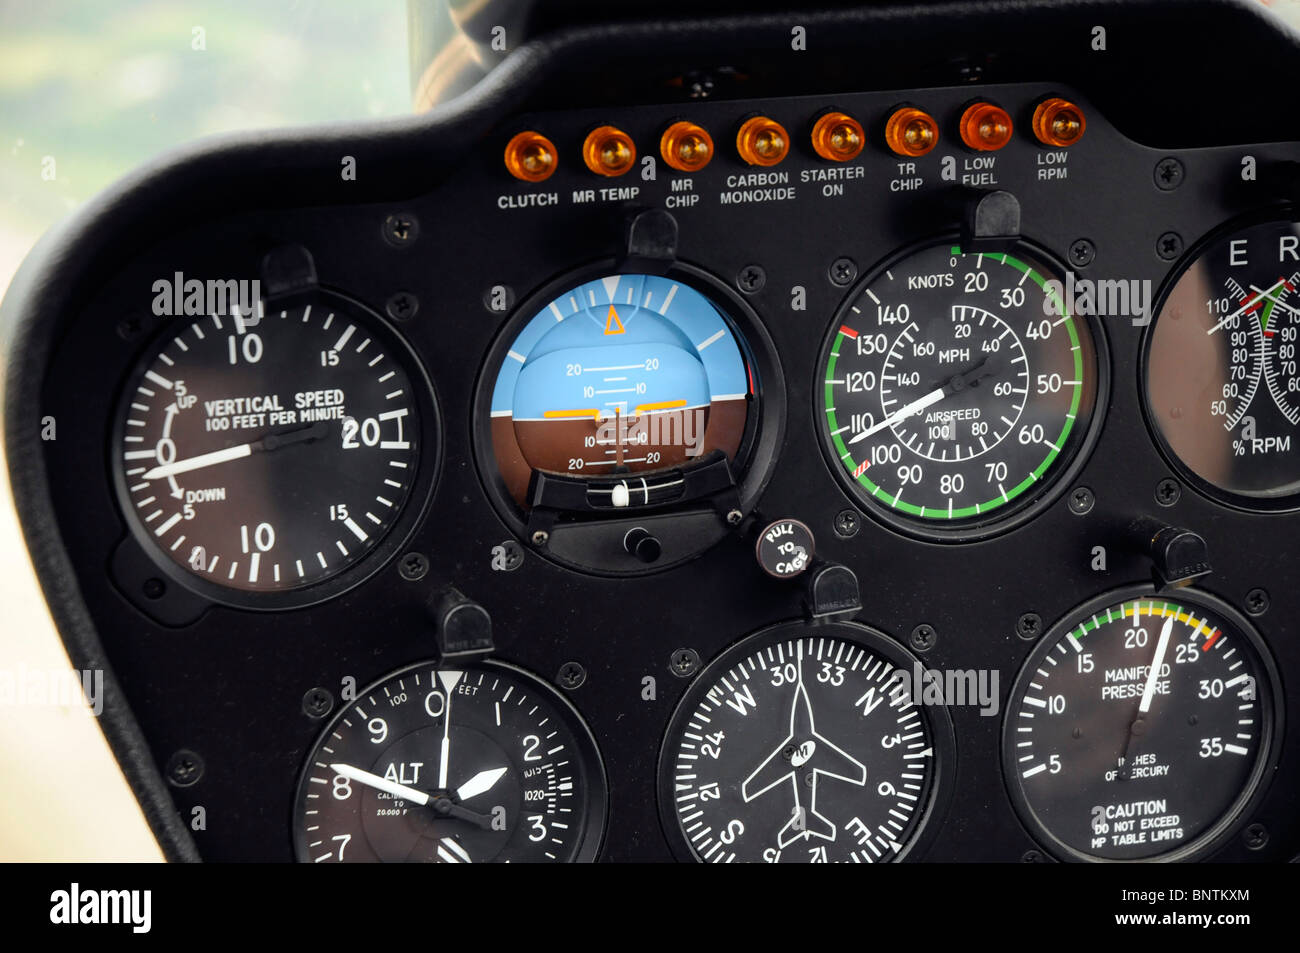 Robinson R44 helicopter cockpit controls dashboard - Stock Image